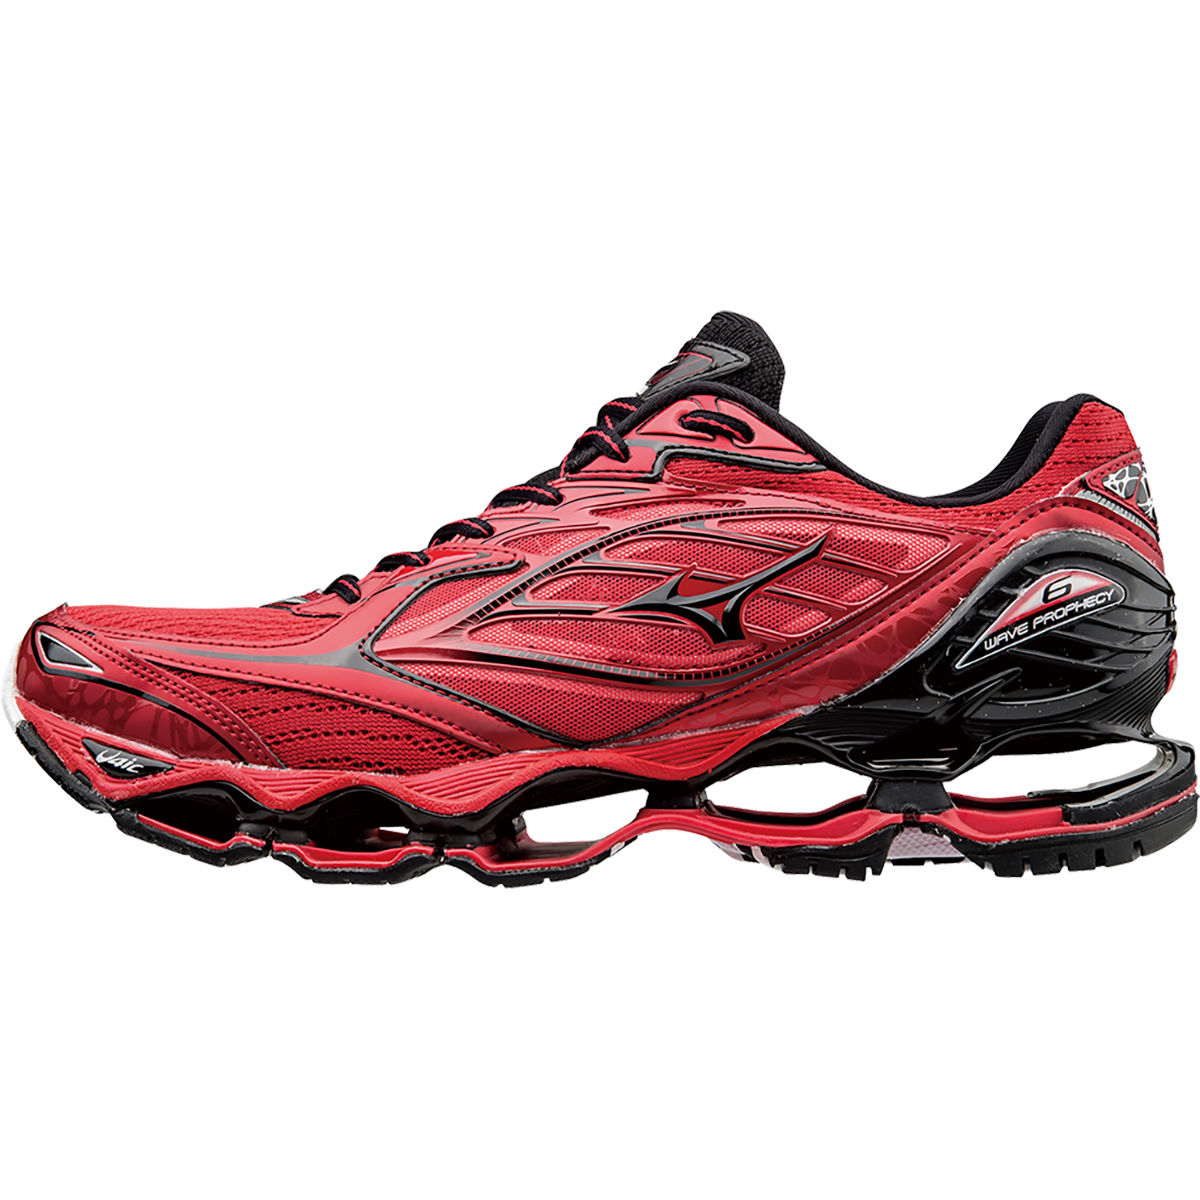 Mizuno Wave Prophacy 6 Shoes Red UK 7 - Polstrede løbesko